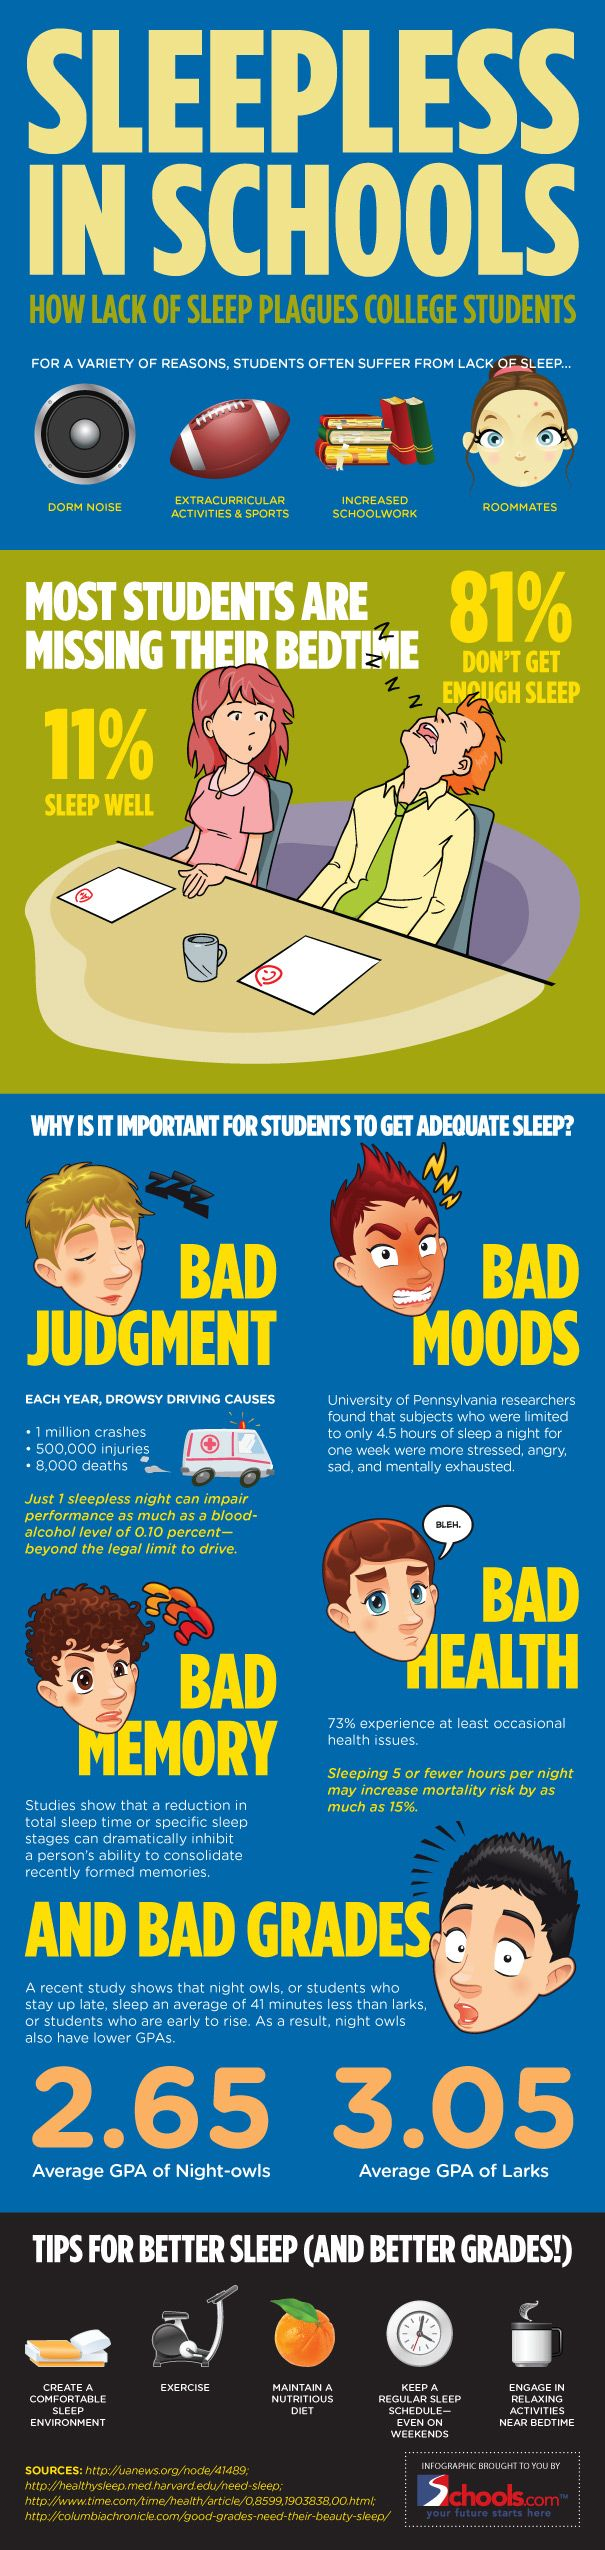 student sleep sleep deprivation among college students see also student sleep sleep deprivation among college students see also